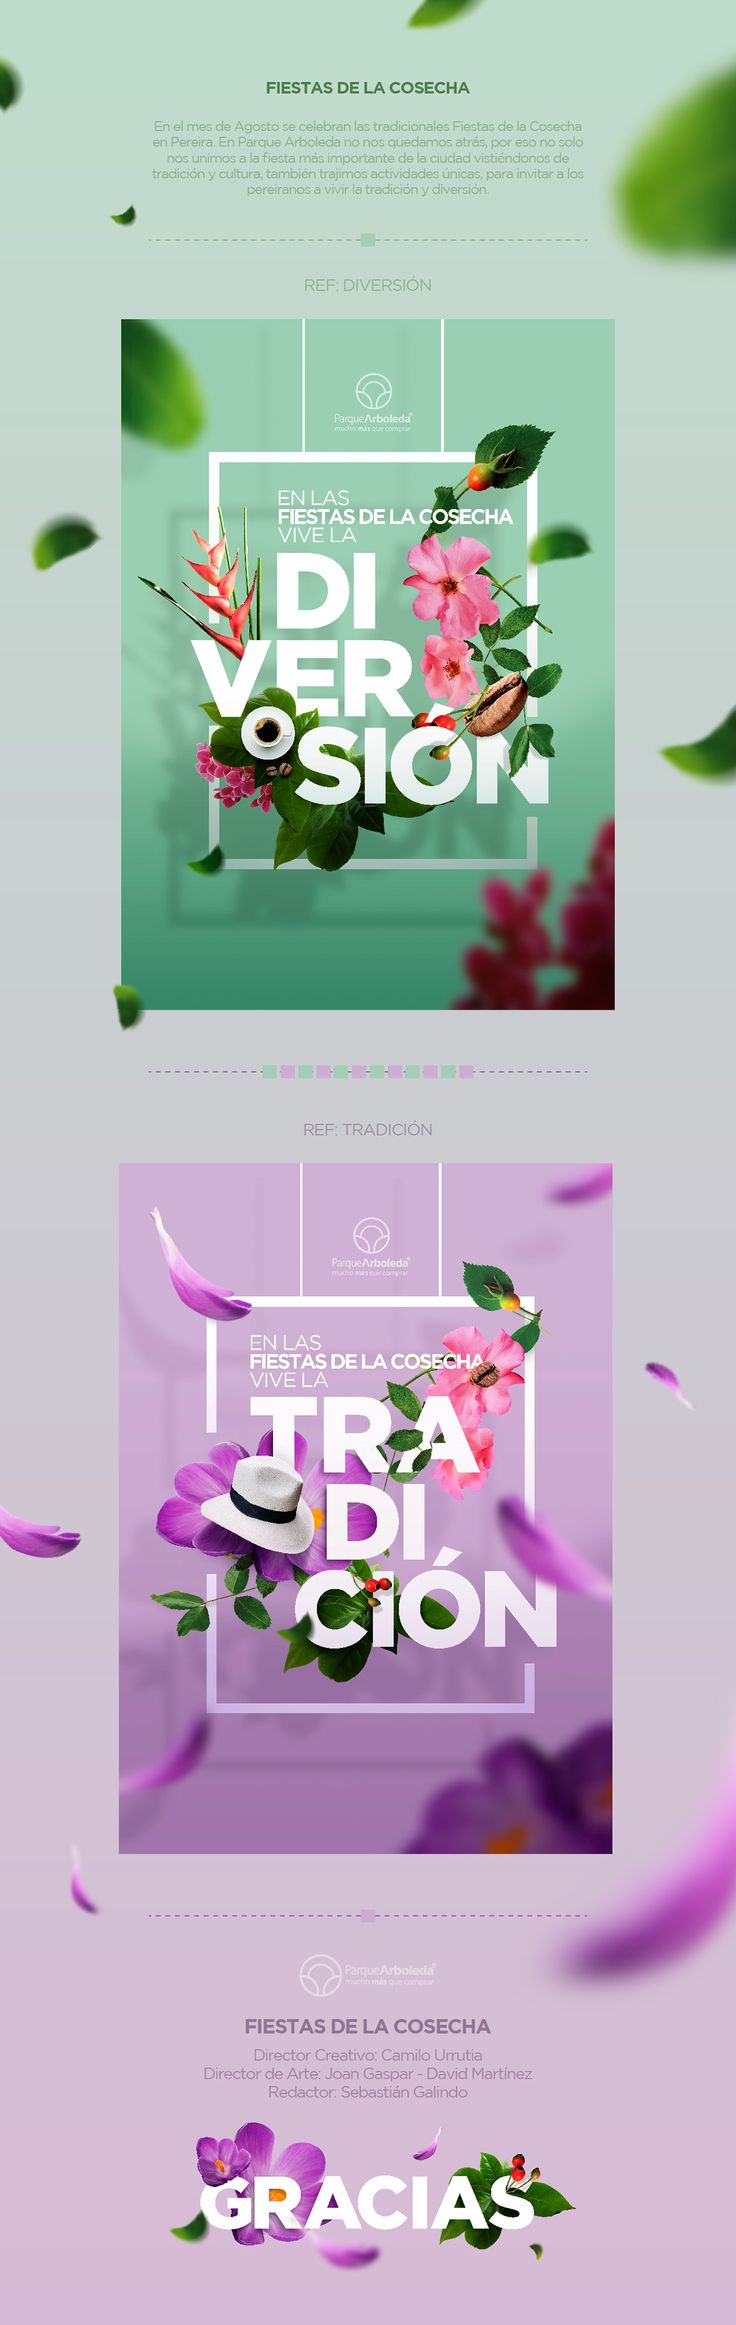 Fiestas de la Cosecha on Behance